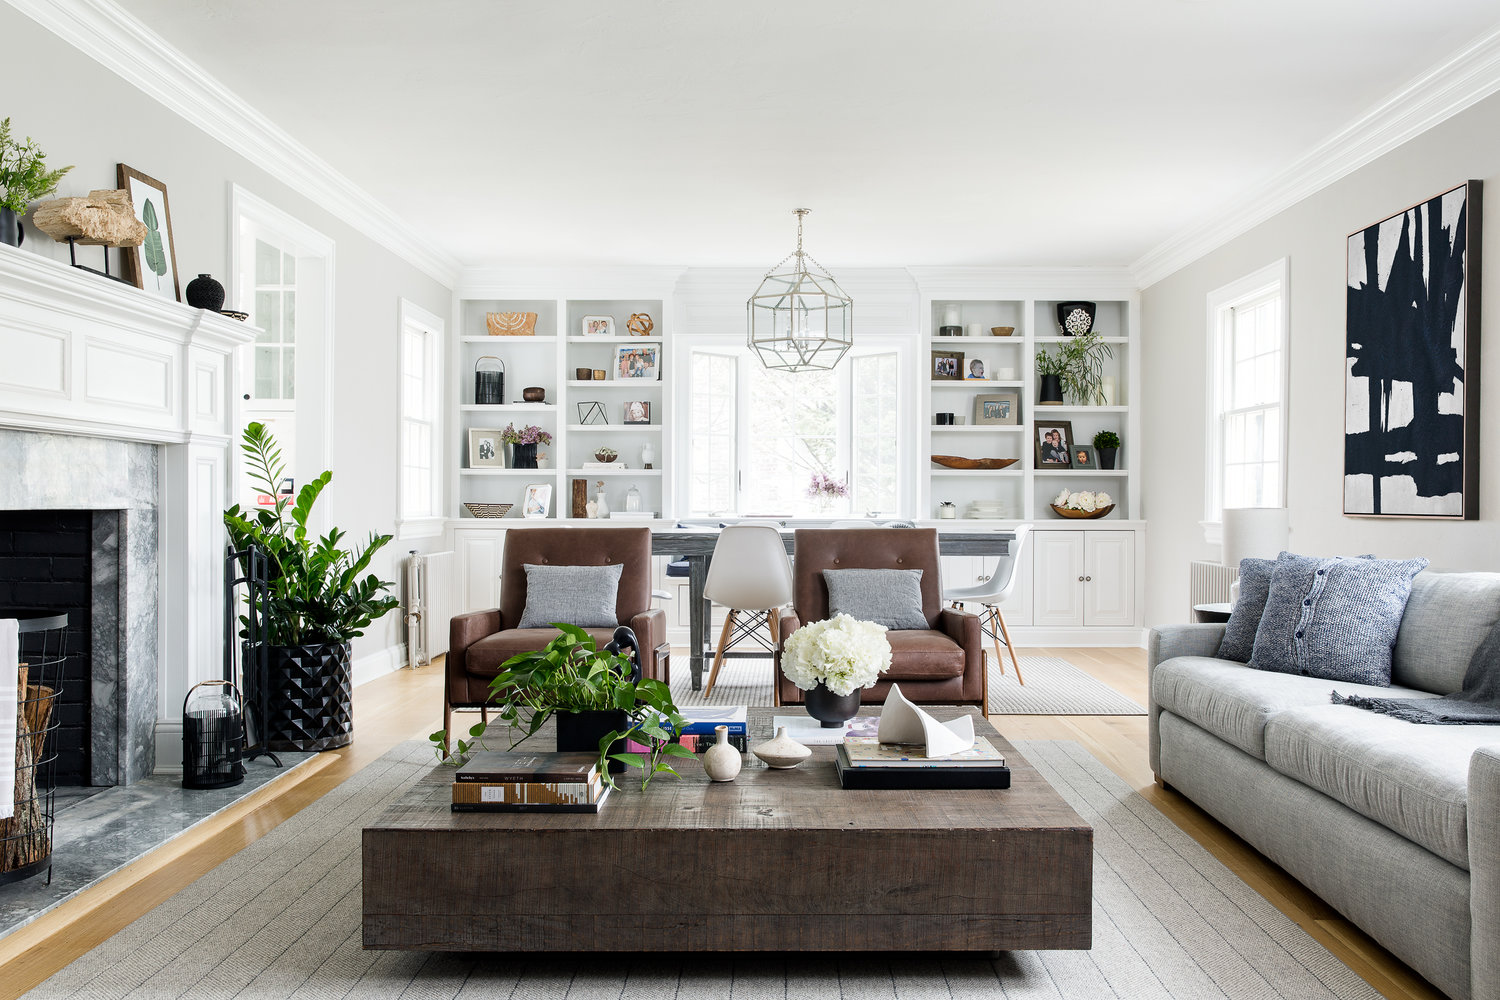 A Nordic-Inspired Port Washington Farmhouse That's the Epitome of Warm Minimalism